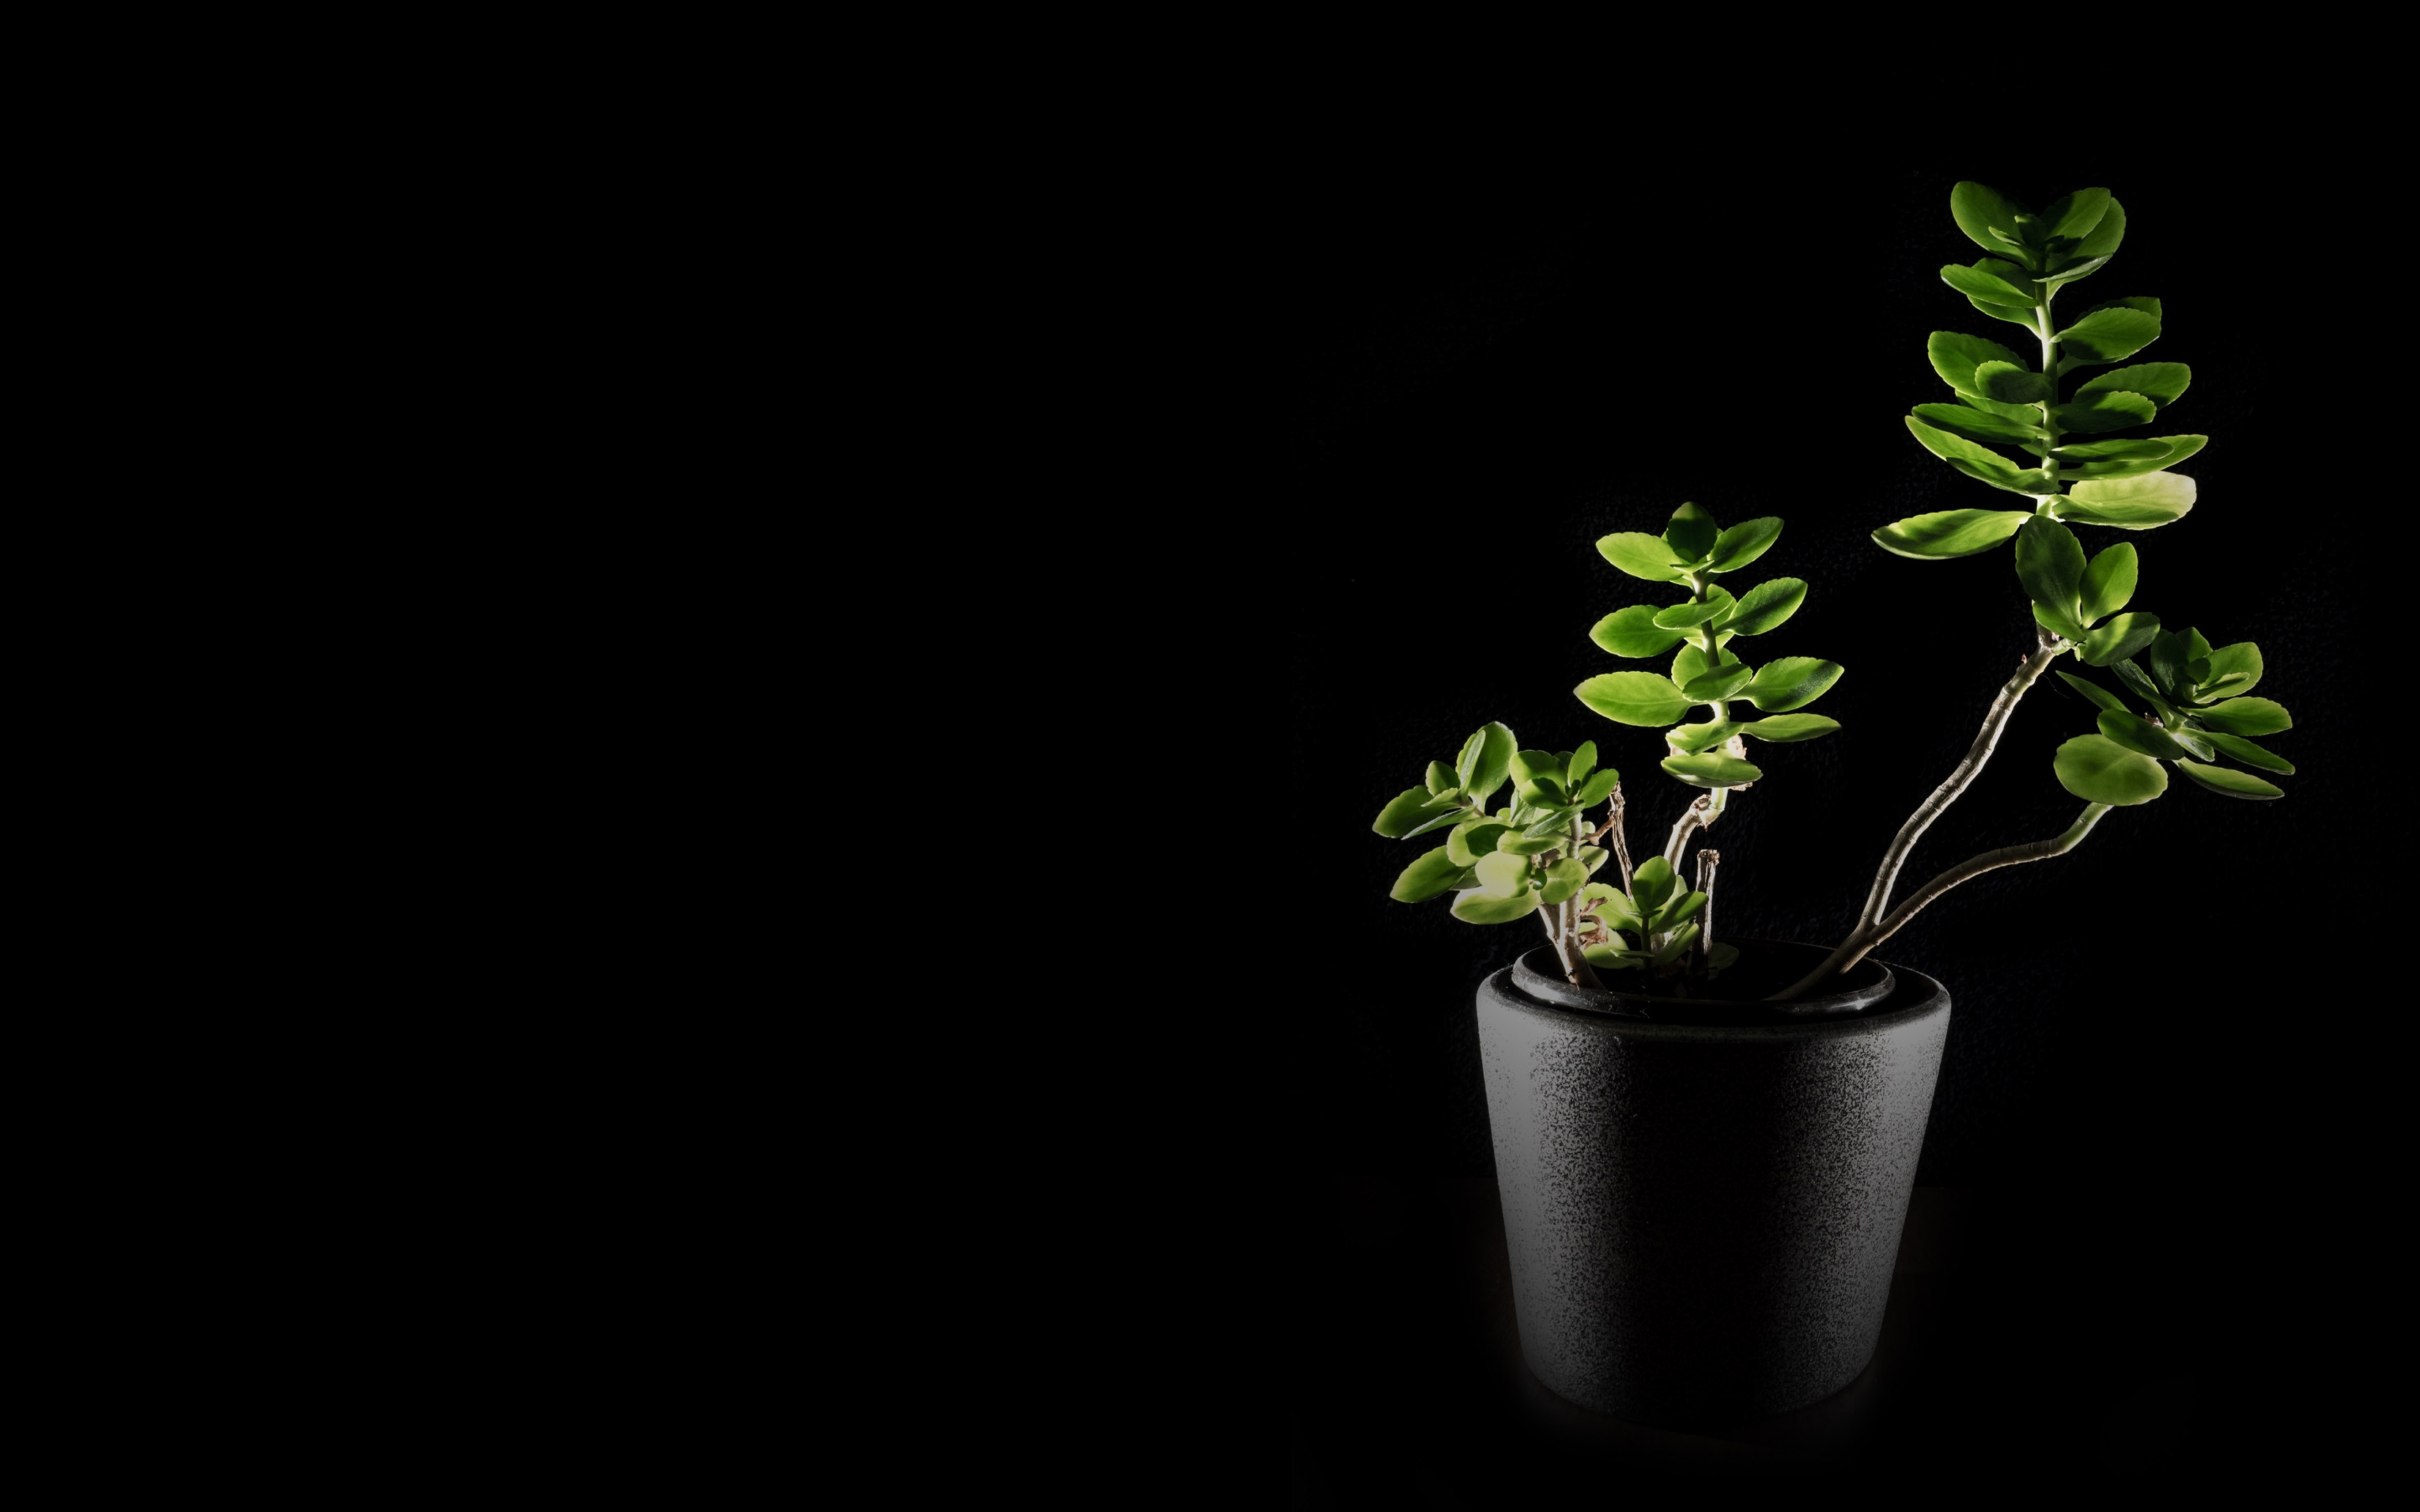 Natural green in darkness | 2880x1800 wallpaper